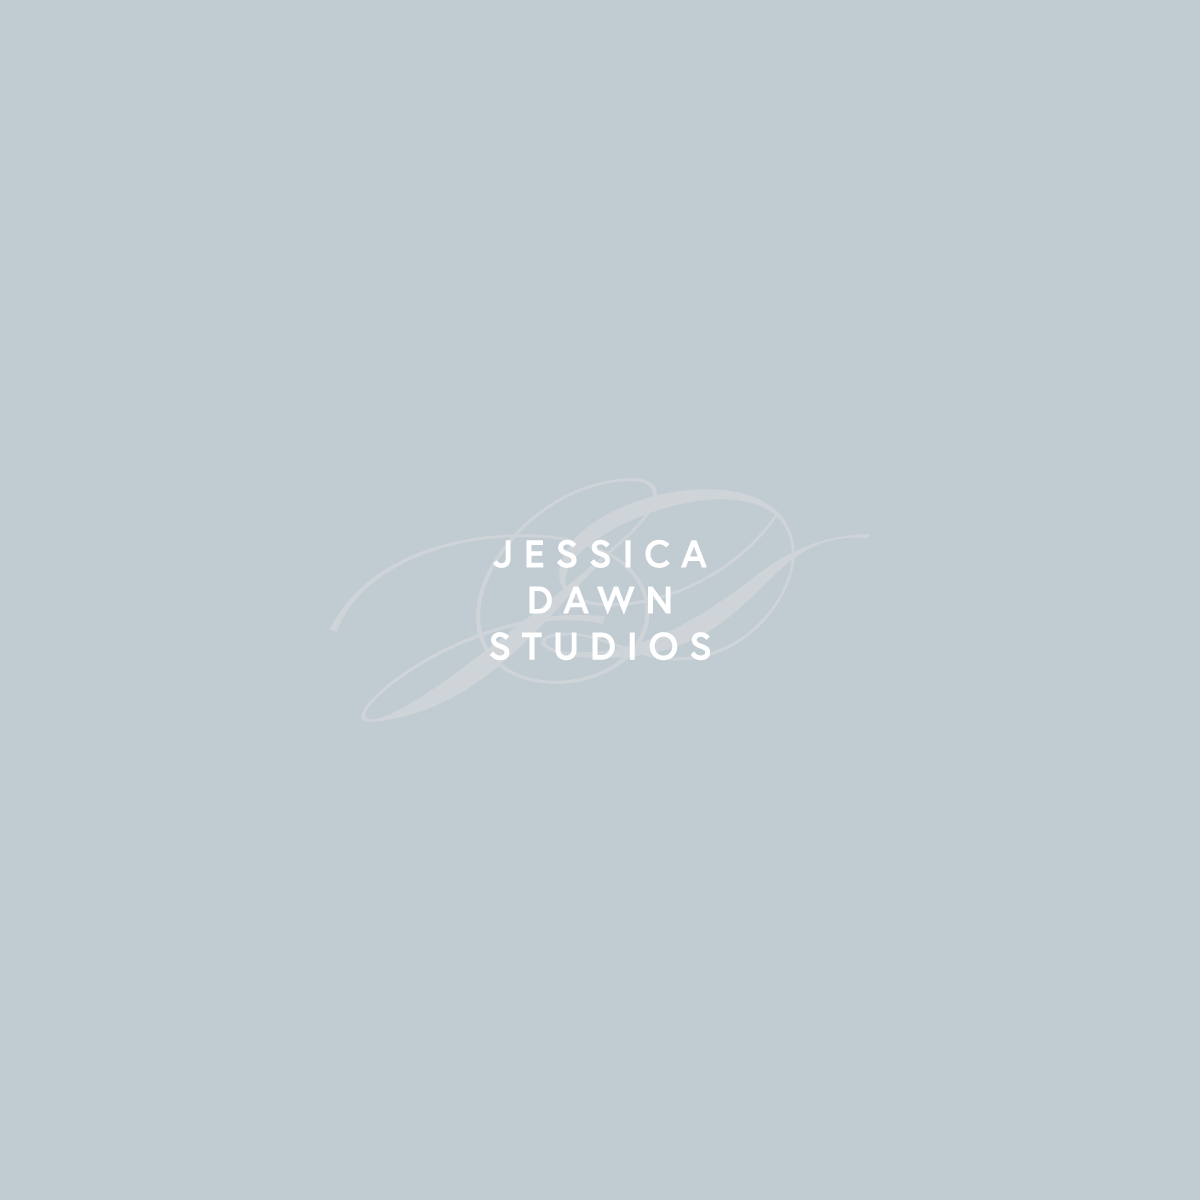 Alternate logo design for Jessica Dawn Studios by Rachel Cottrell | #graphicdesigner #branddesign #weddingphotographer #romanticweddingphotos #modernbrand #moodboard #photogbranding #branding #familyphotographer #creativebusiness #mycreativebiz #womeninbusiness #bossbabe #girlboss